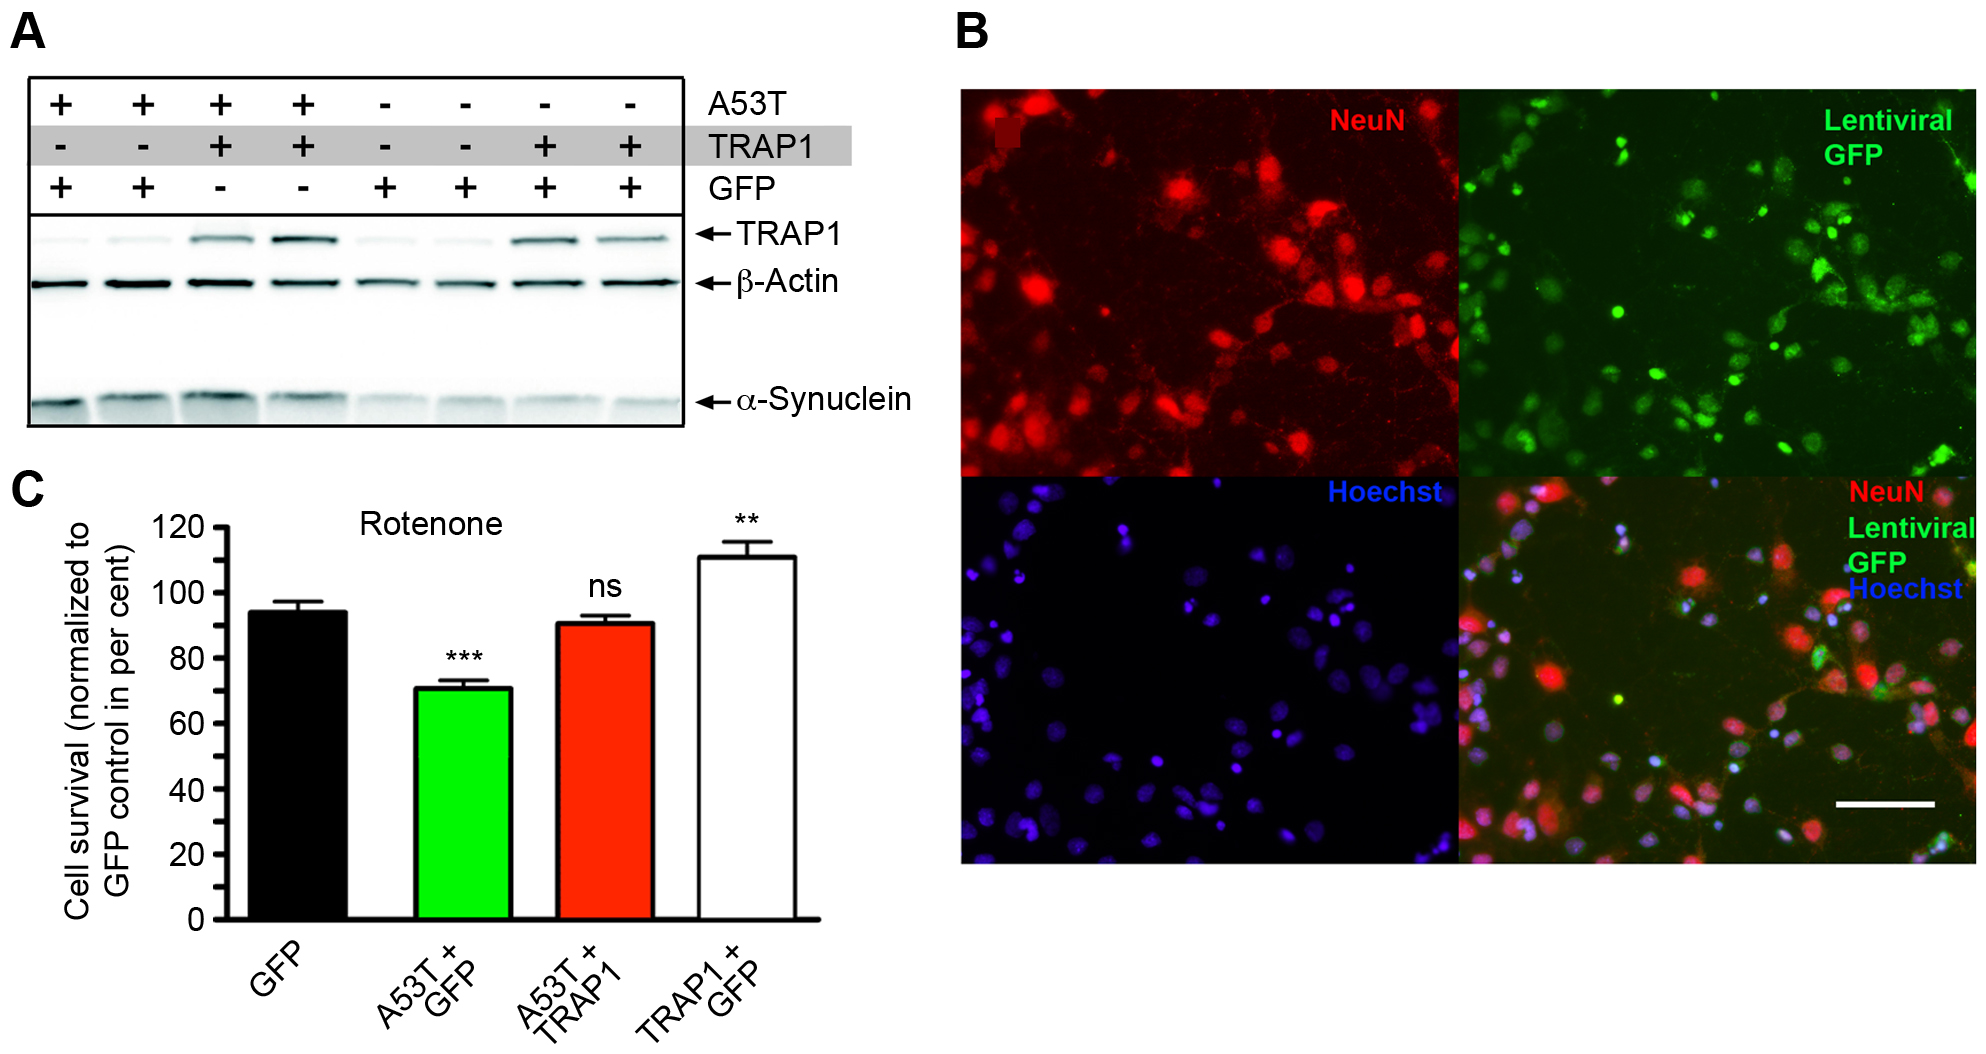 TRAP1 overexpression protects rat cortical neurons from [A53T]α-Synuclein-induced sensitivity to rotenone.